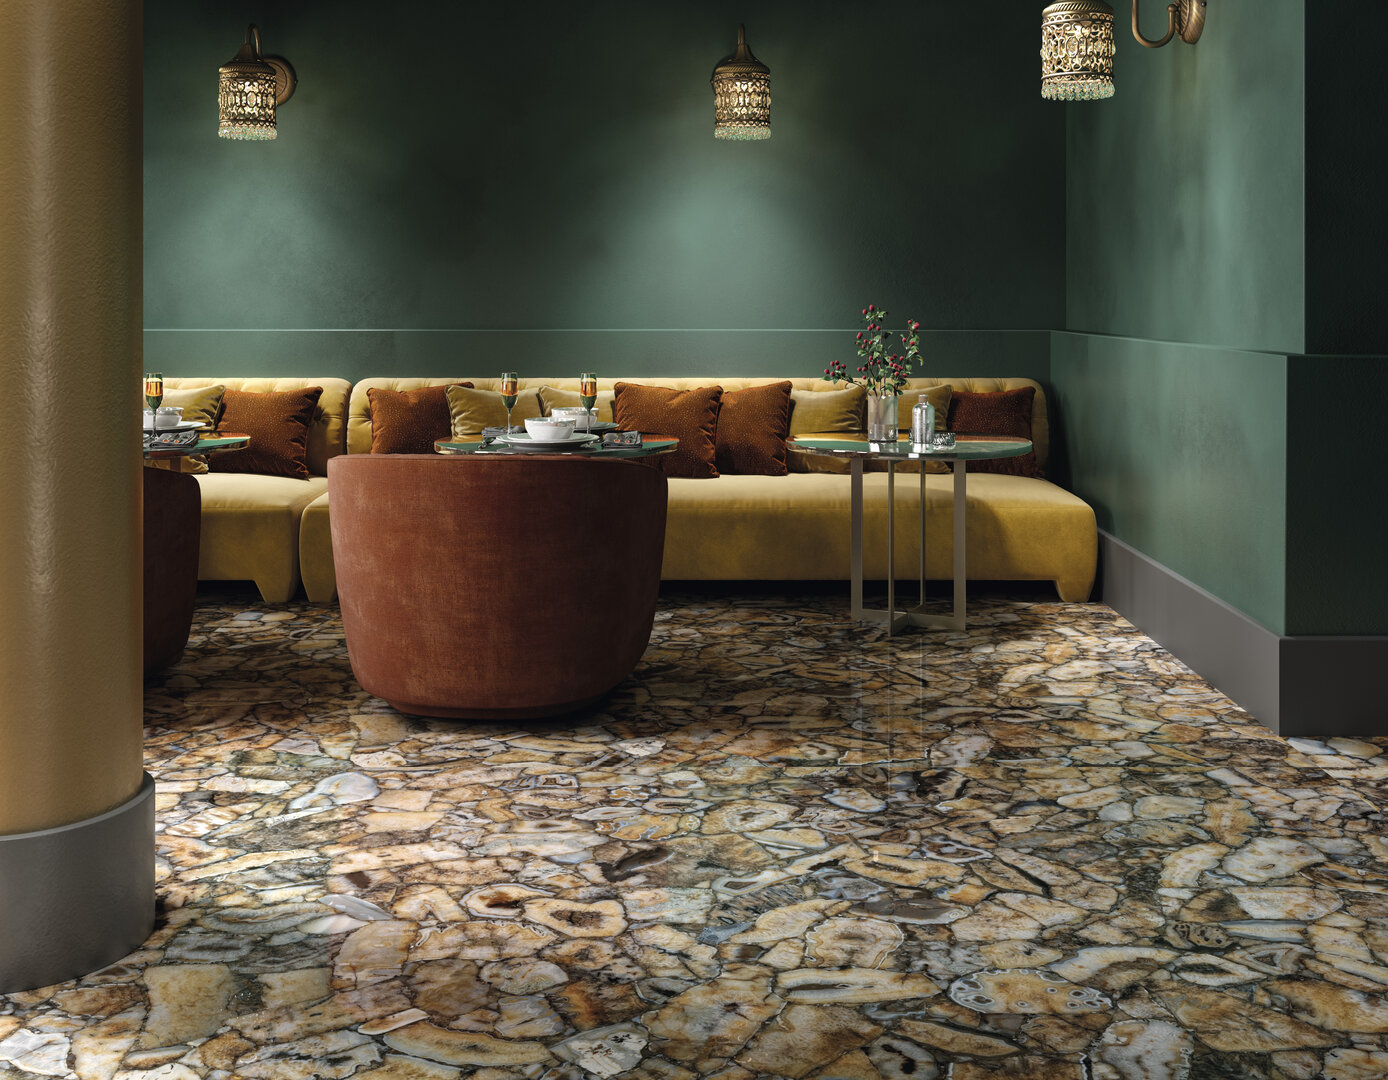 Large surfaces for interior design Iris